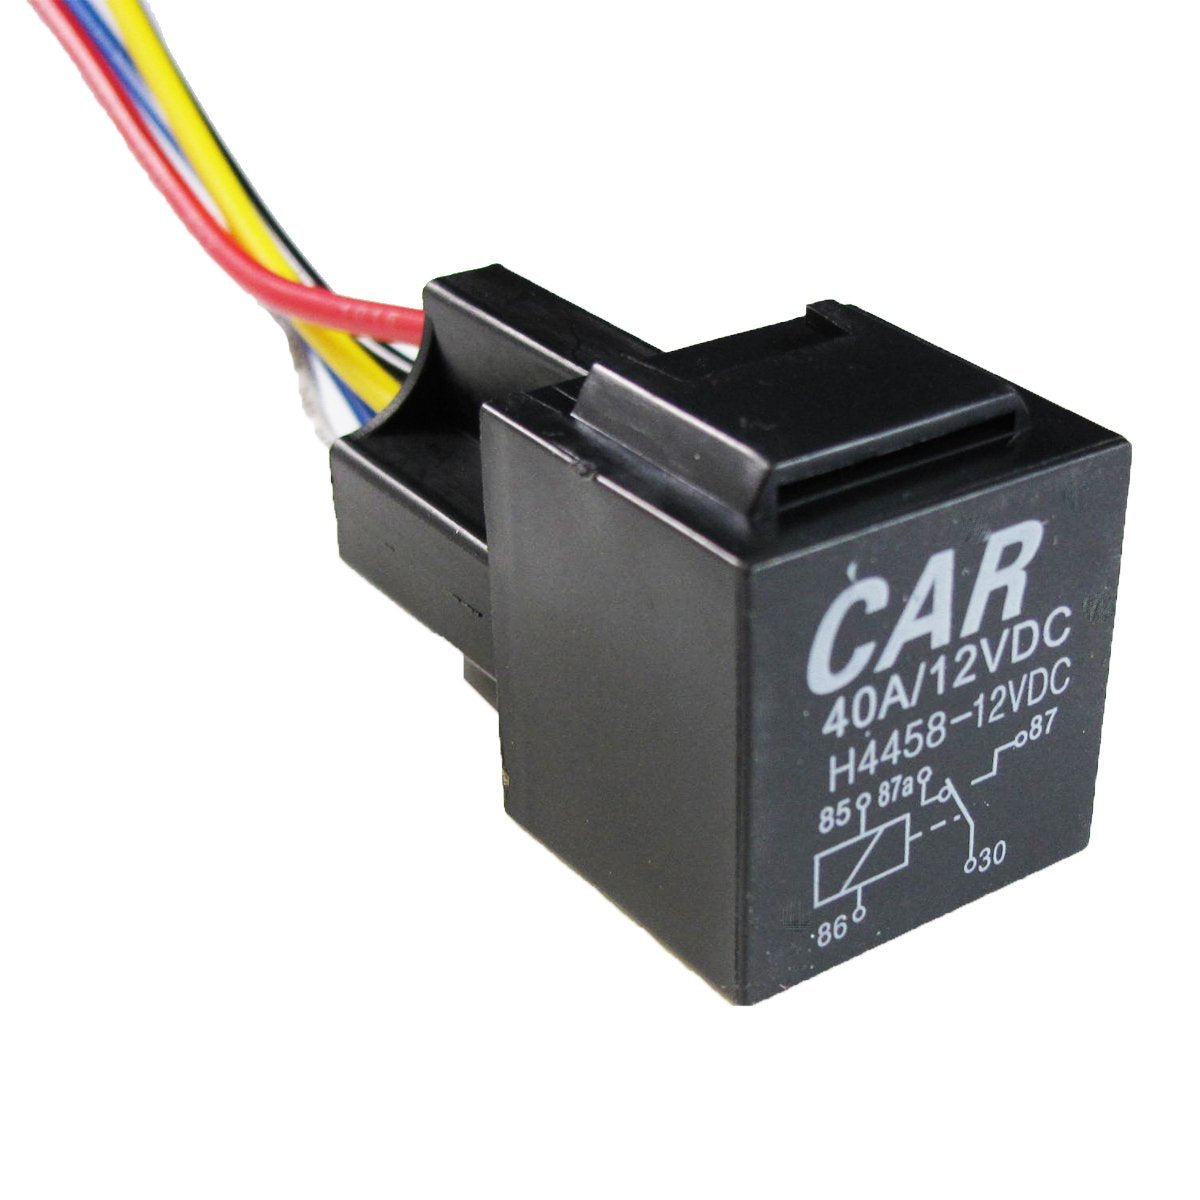 1x 5Pin 12V 40A SPDT Auto Relay Socket Wire For Car Fog Light DRL